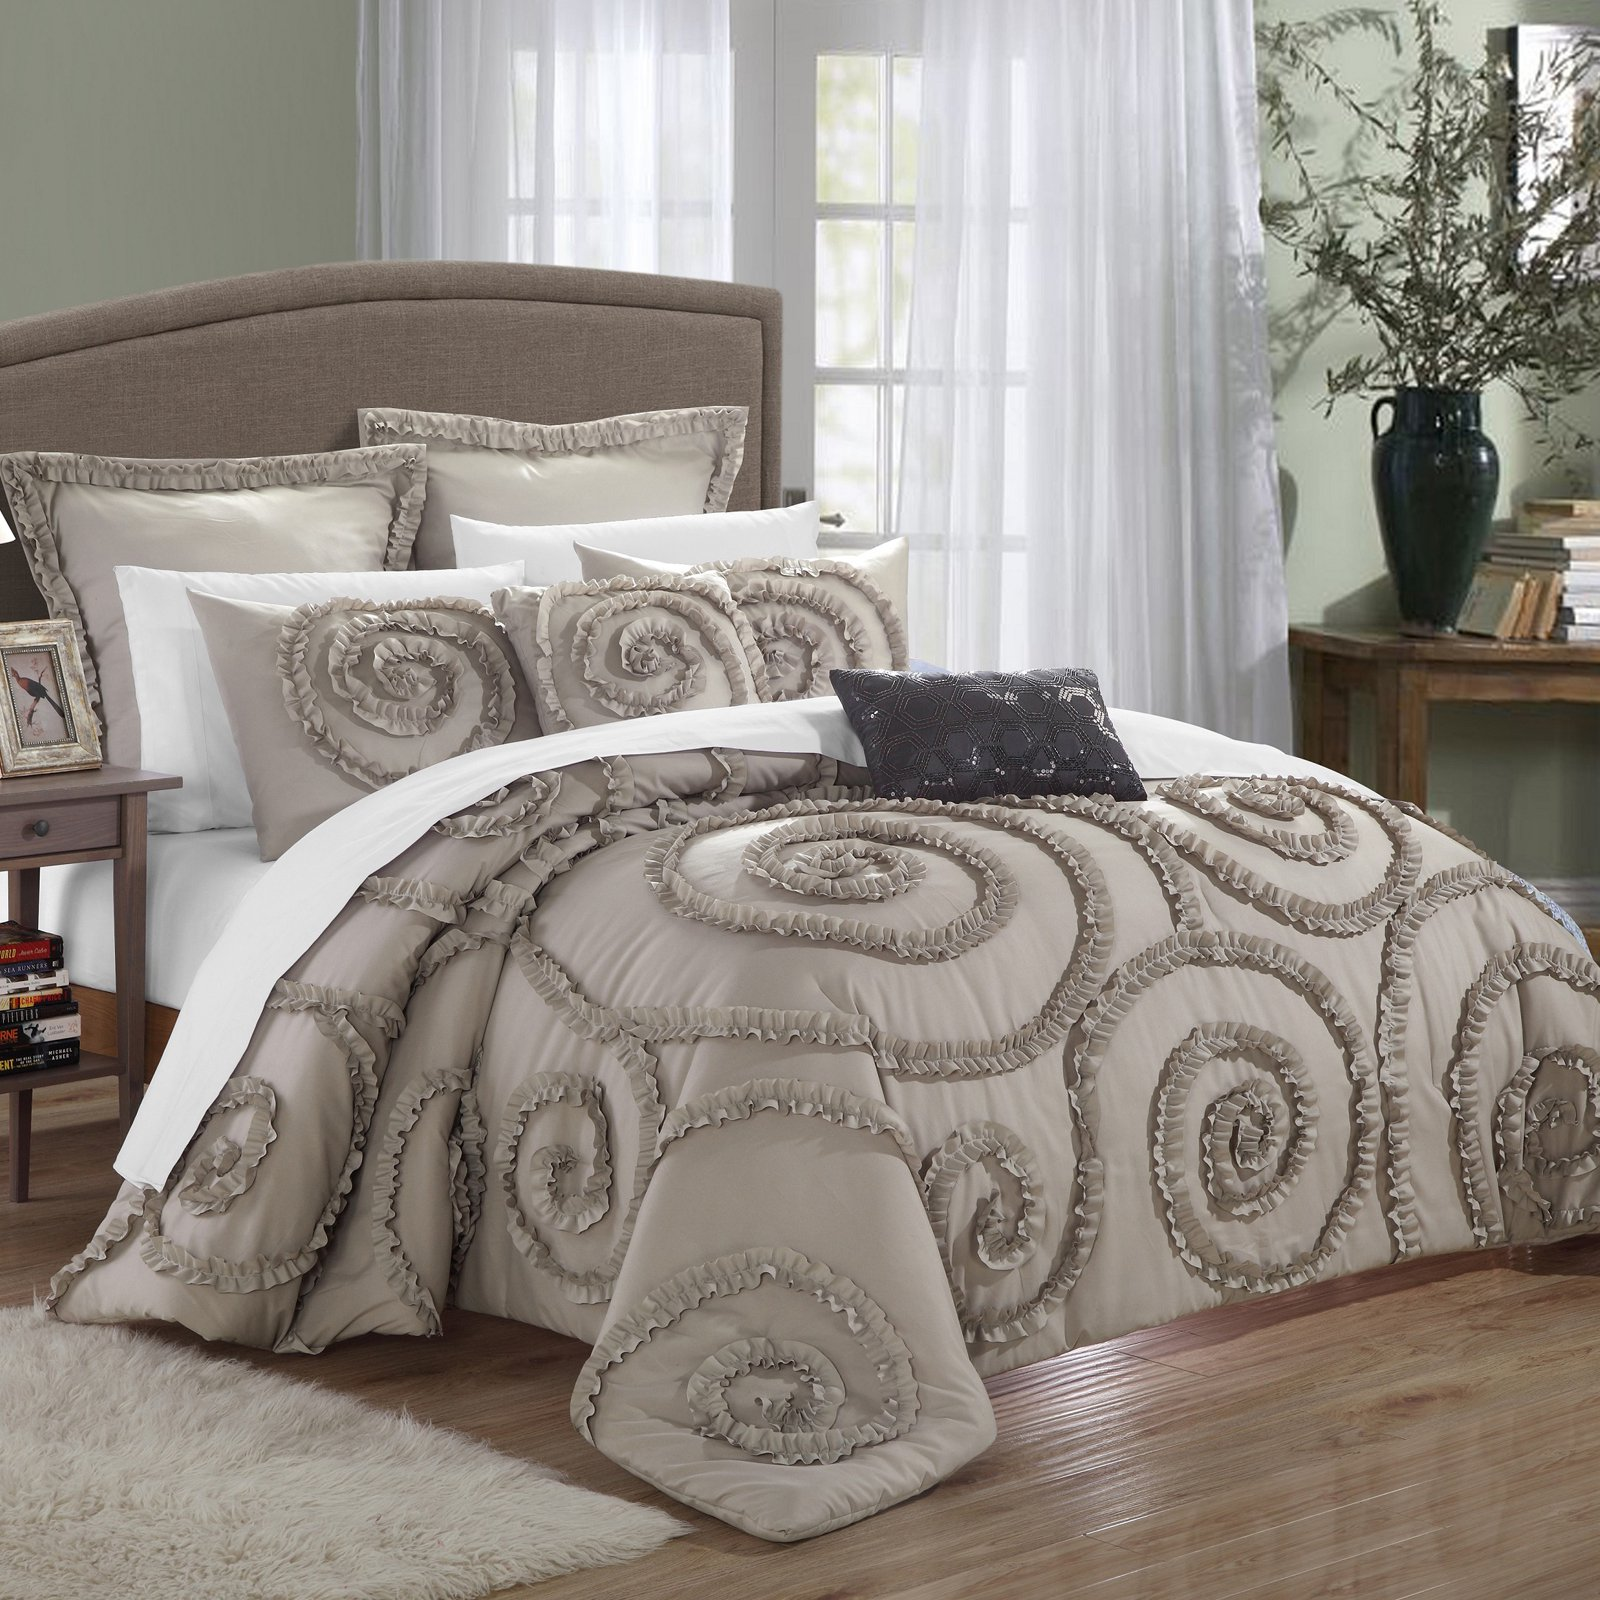 Chic Home Rosamond 11-Piece Ruffled Etched Embroidered Comforter Set